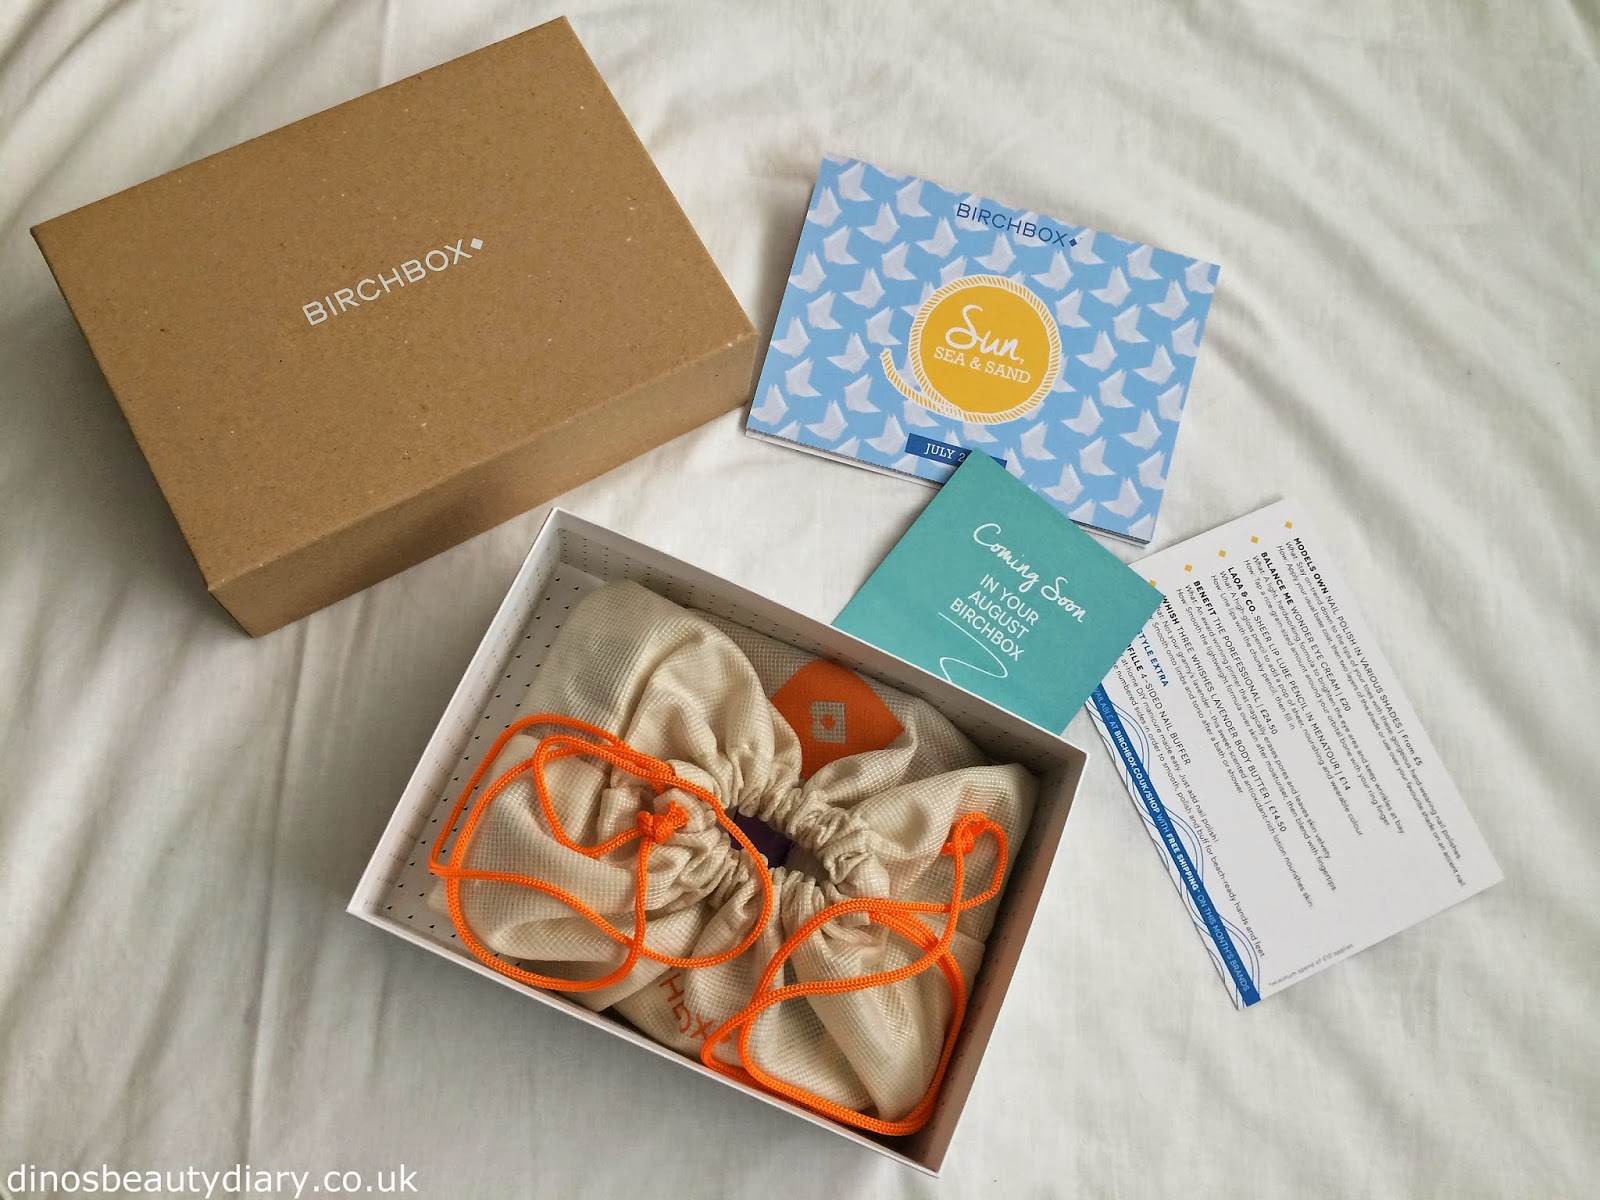 Dinos Beauty Diary - June and July Birchbox - July Birchbox